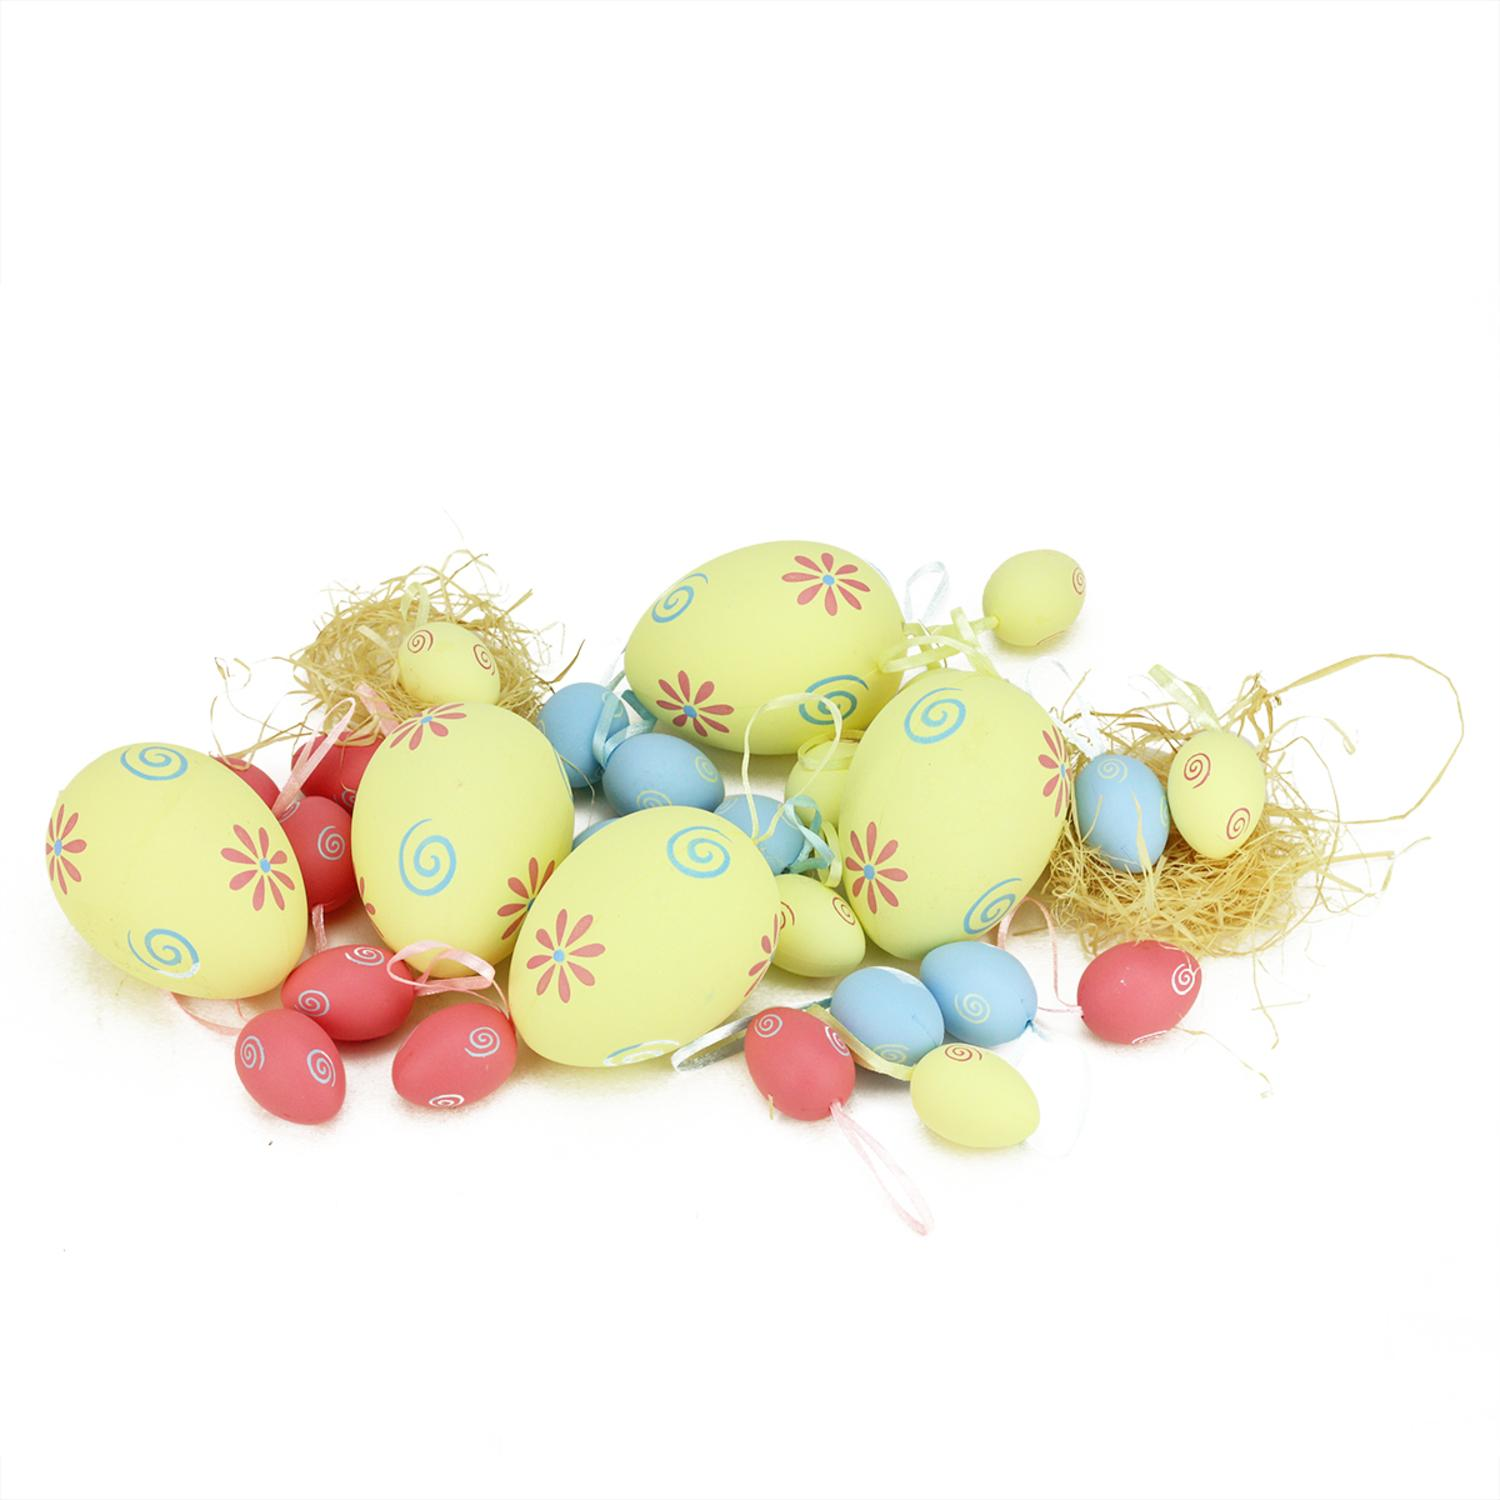 Set of 29 Blue Yellow and Pink Painted Floral Spring Easter Egg Ornaments 3.25""